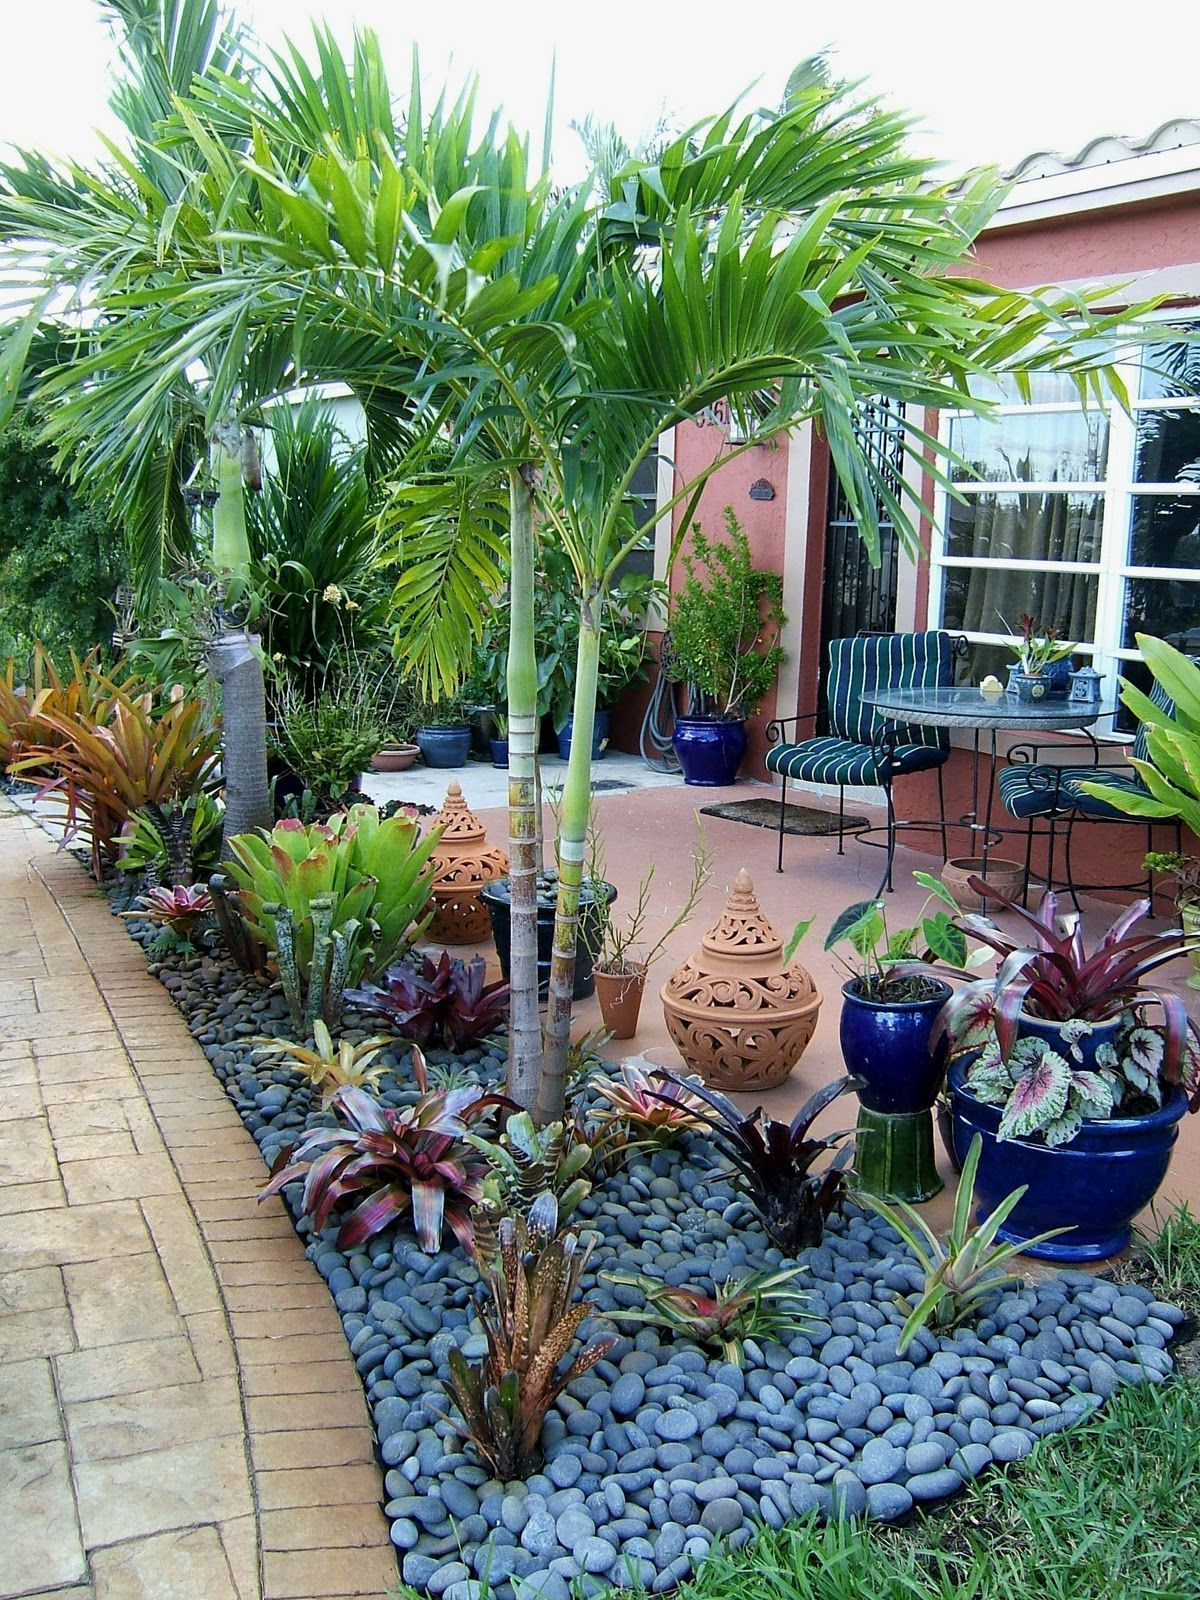 30 front yard landscaping ideas and garden designs with on attractive tropical landscaping ideas id=42819